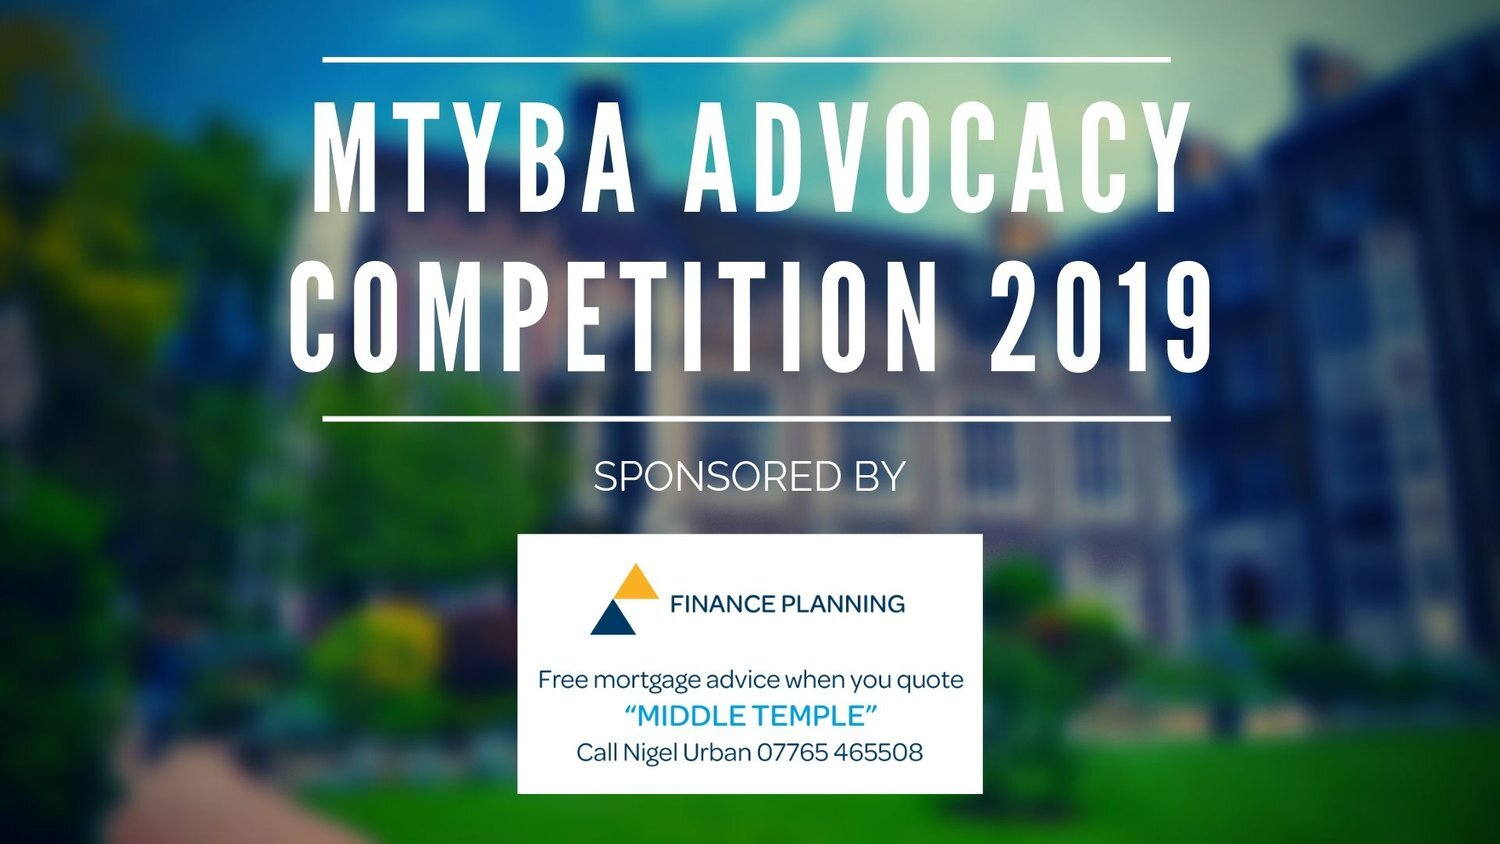 MTYBA+Advocacy+Competition+2019.jpg